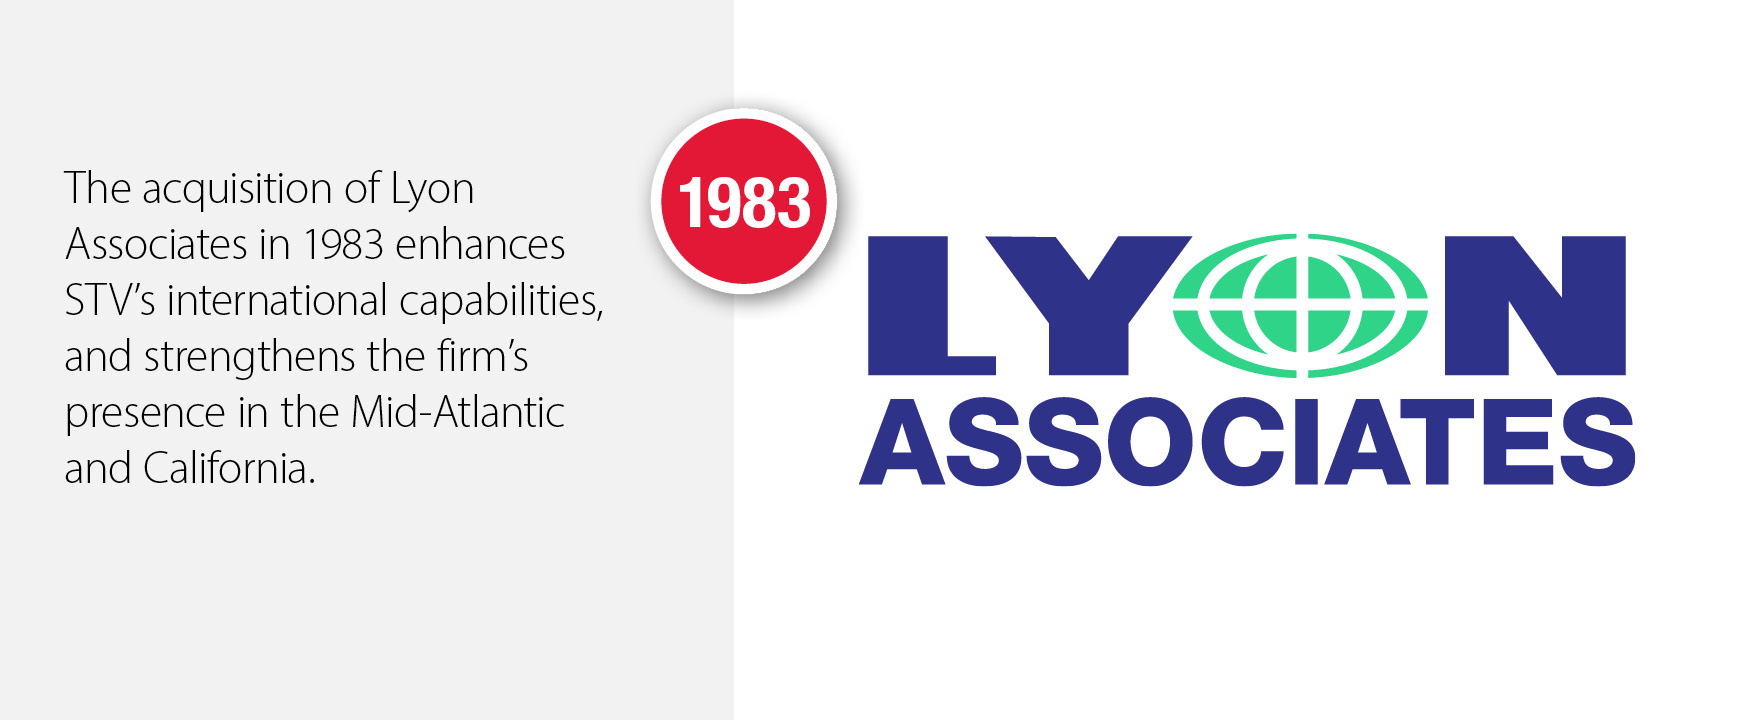 1983 - STV acquires Lyon Associates